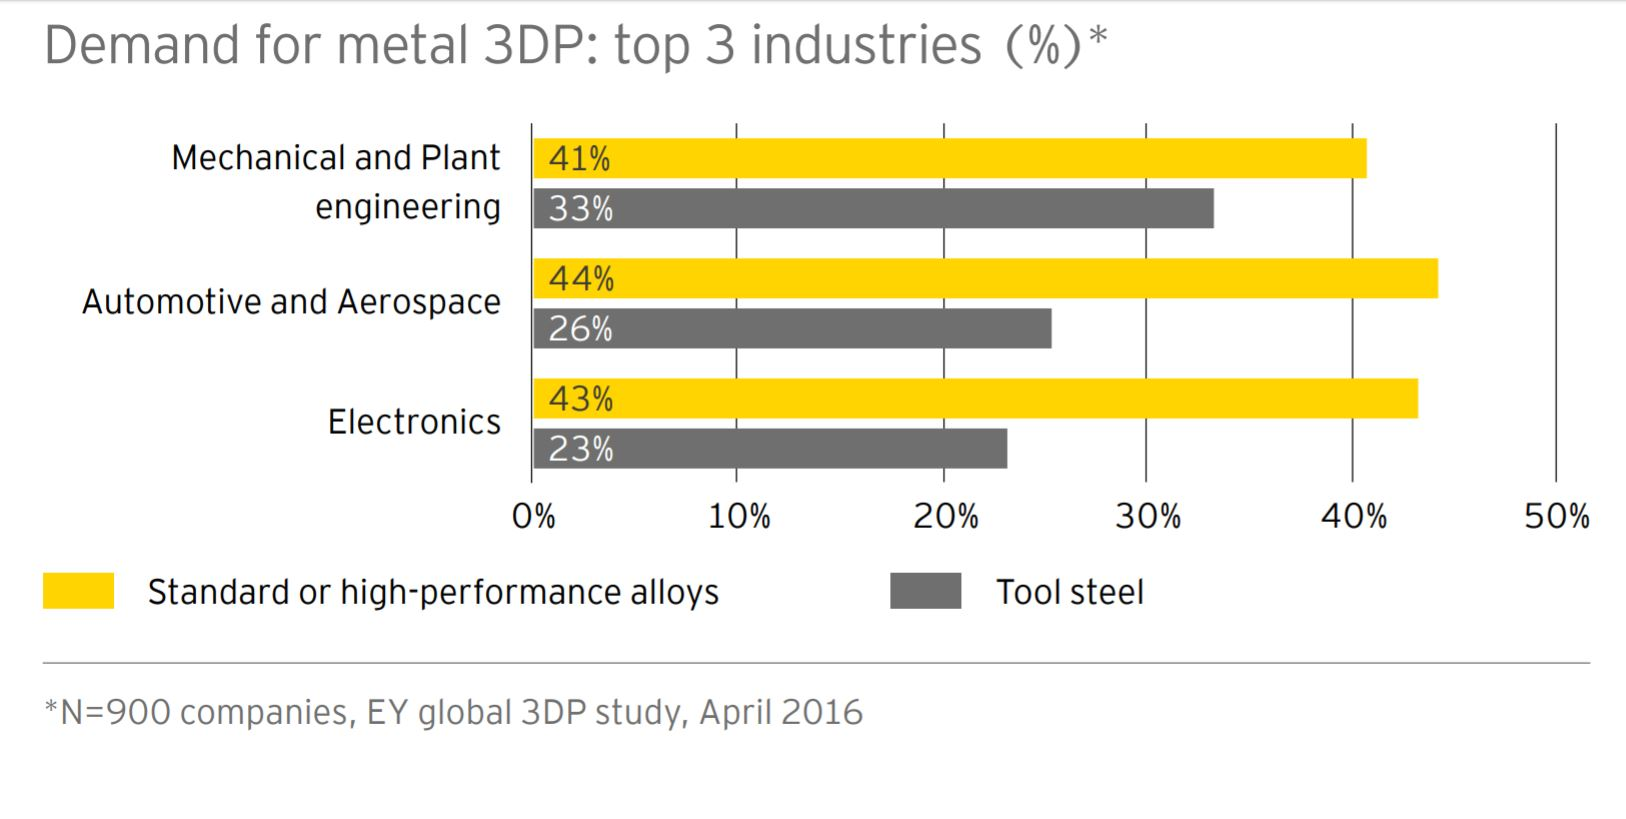 Top 3 demanded industries for metal 3D printing